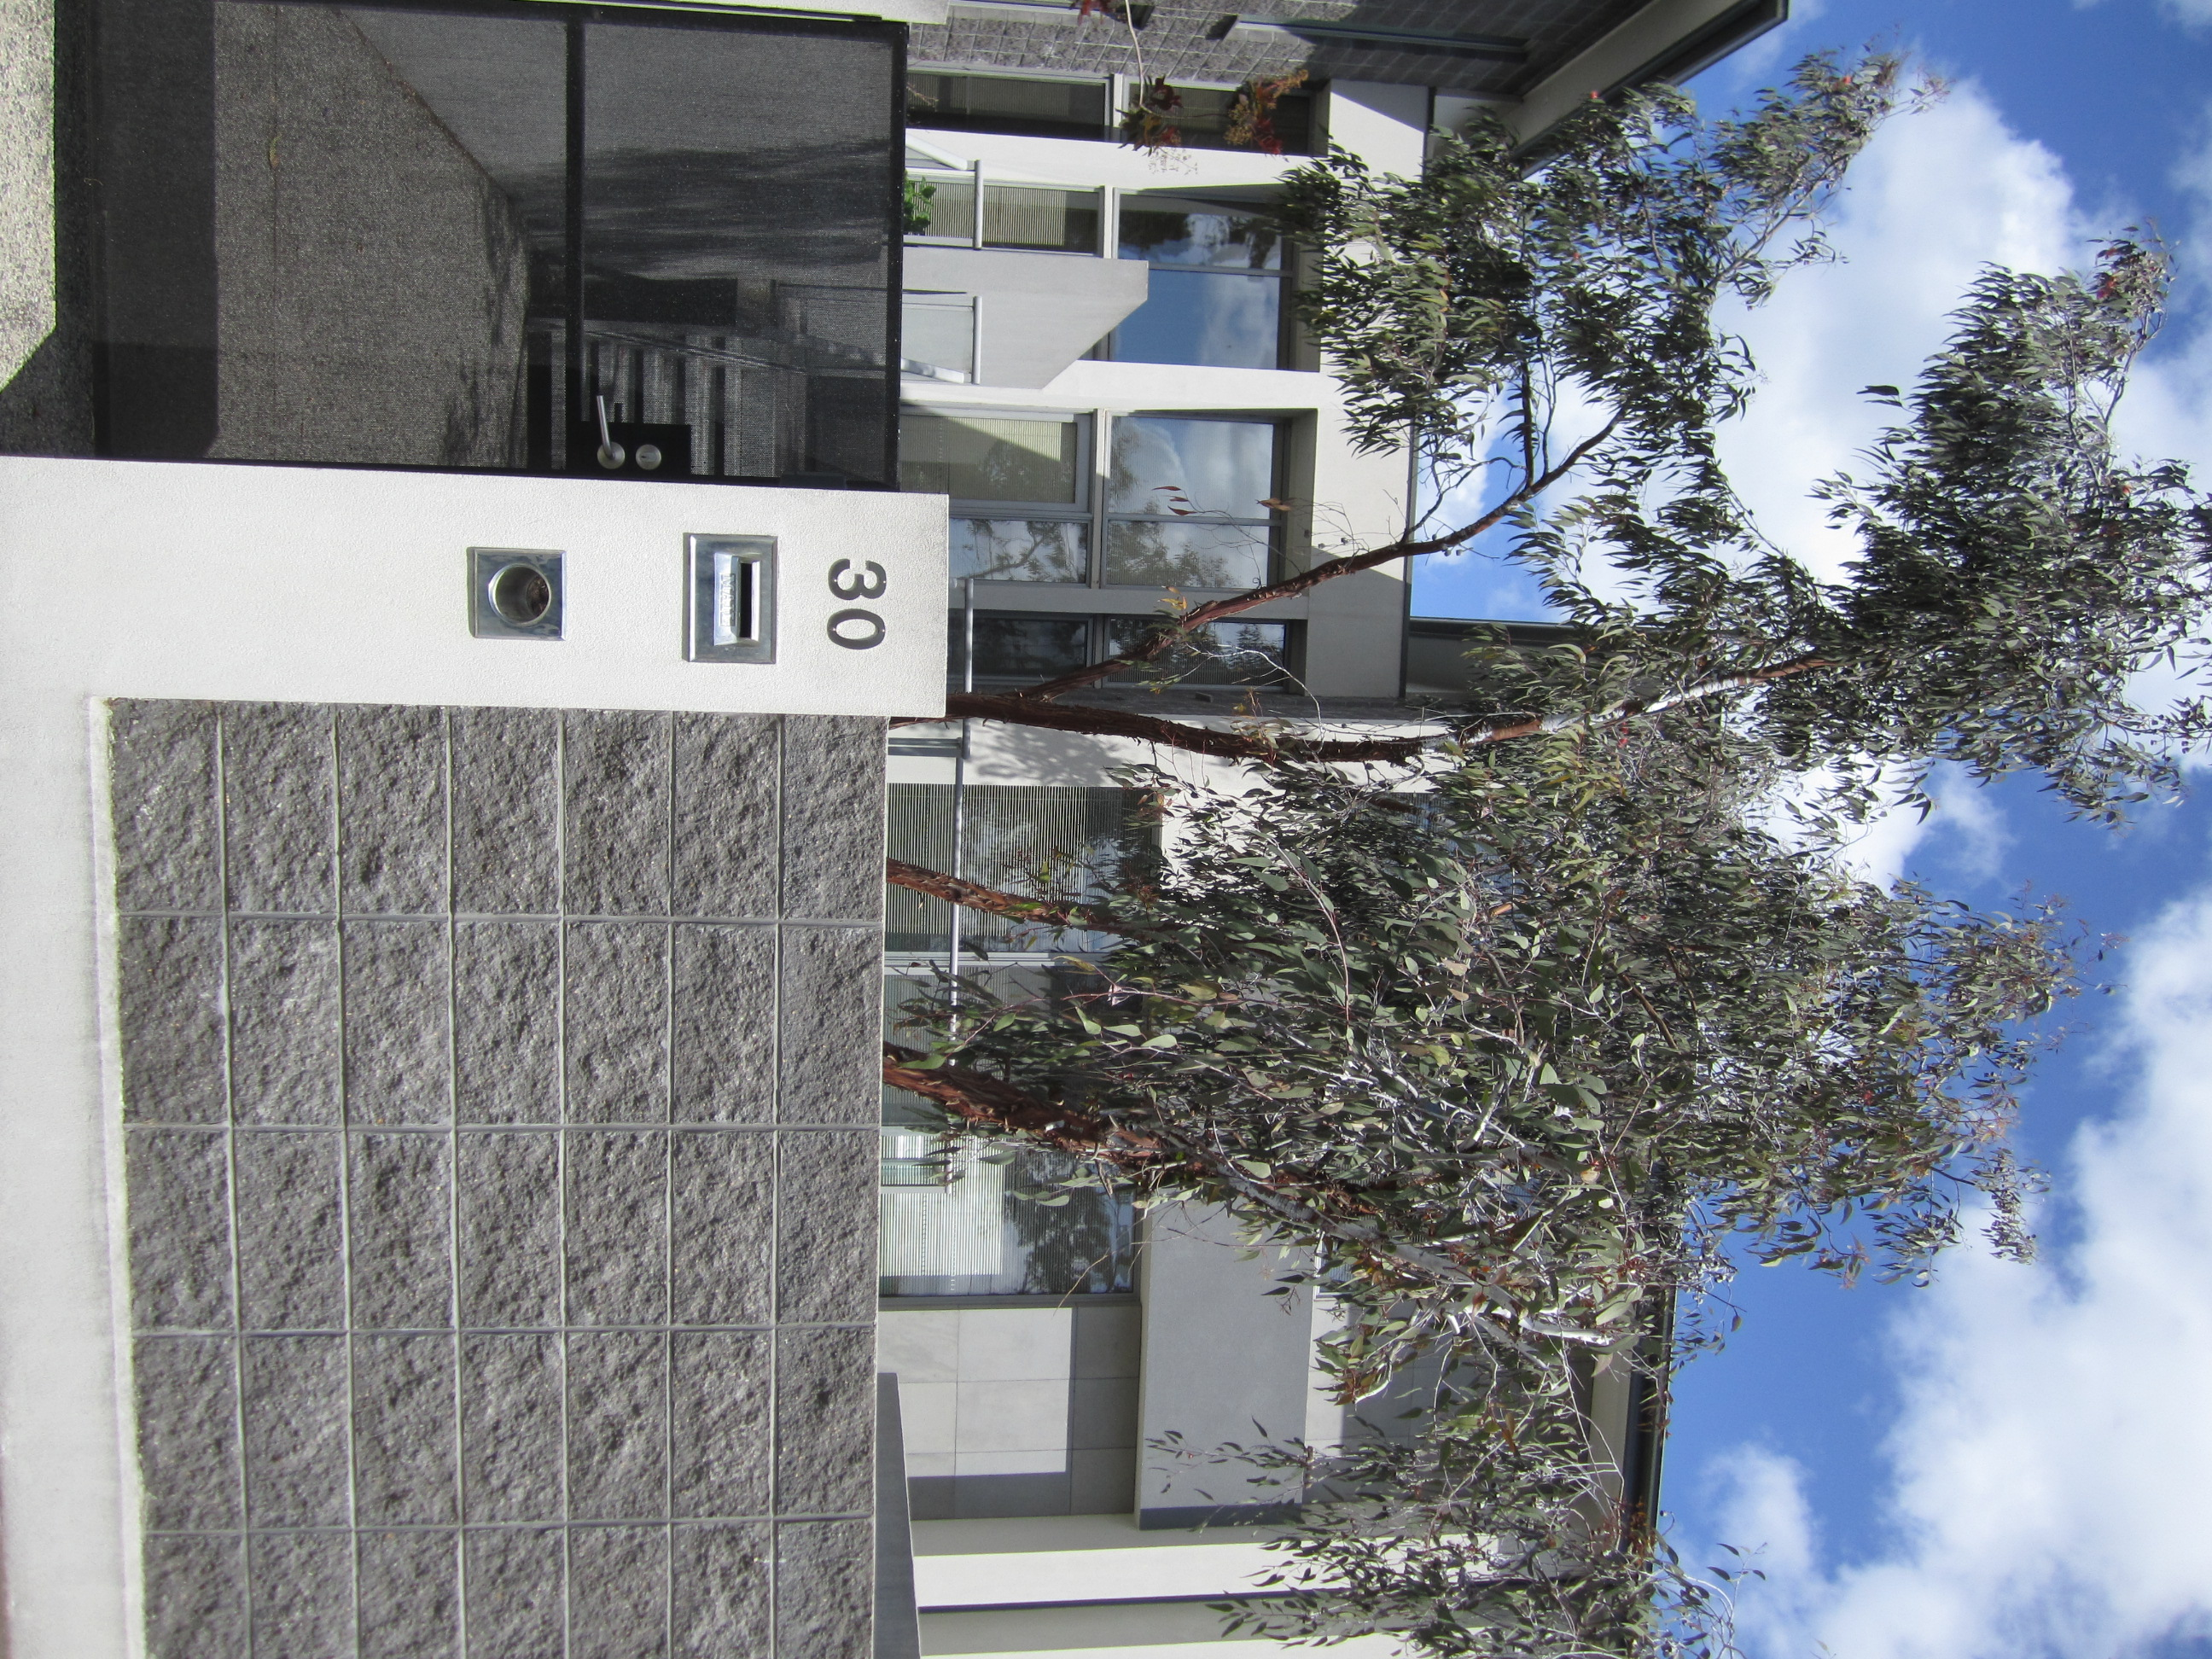 30 Martin Street, Beaumaris Vic 3193  Townhouse For Rent